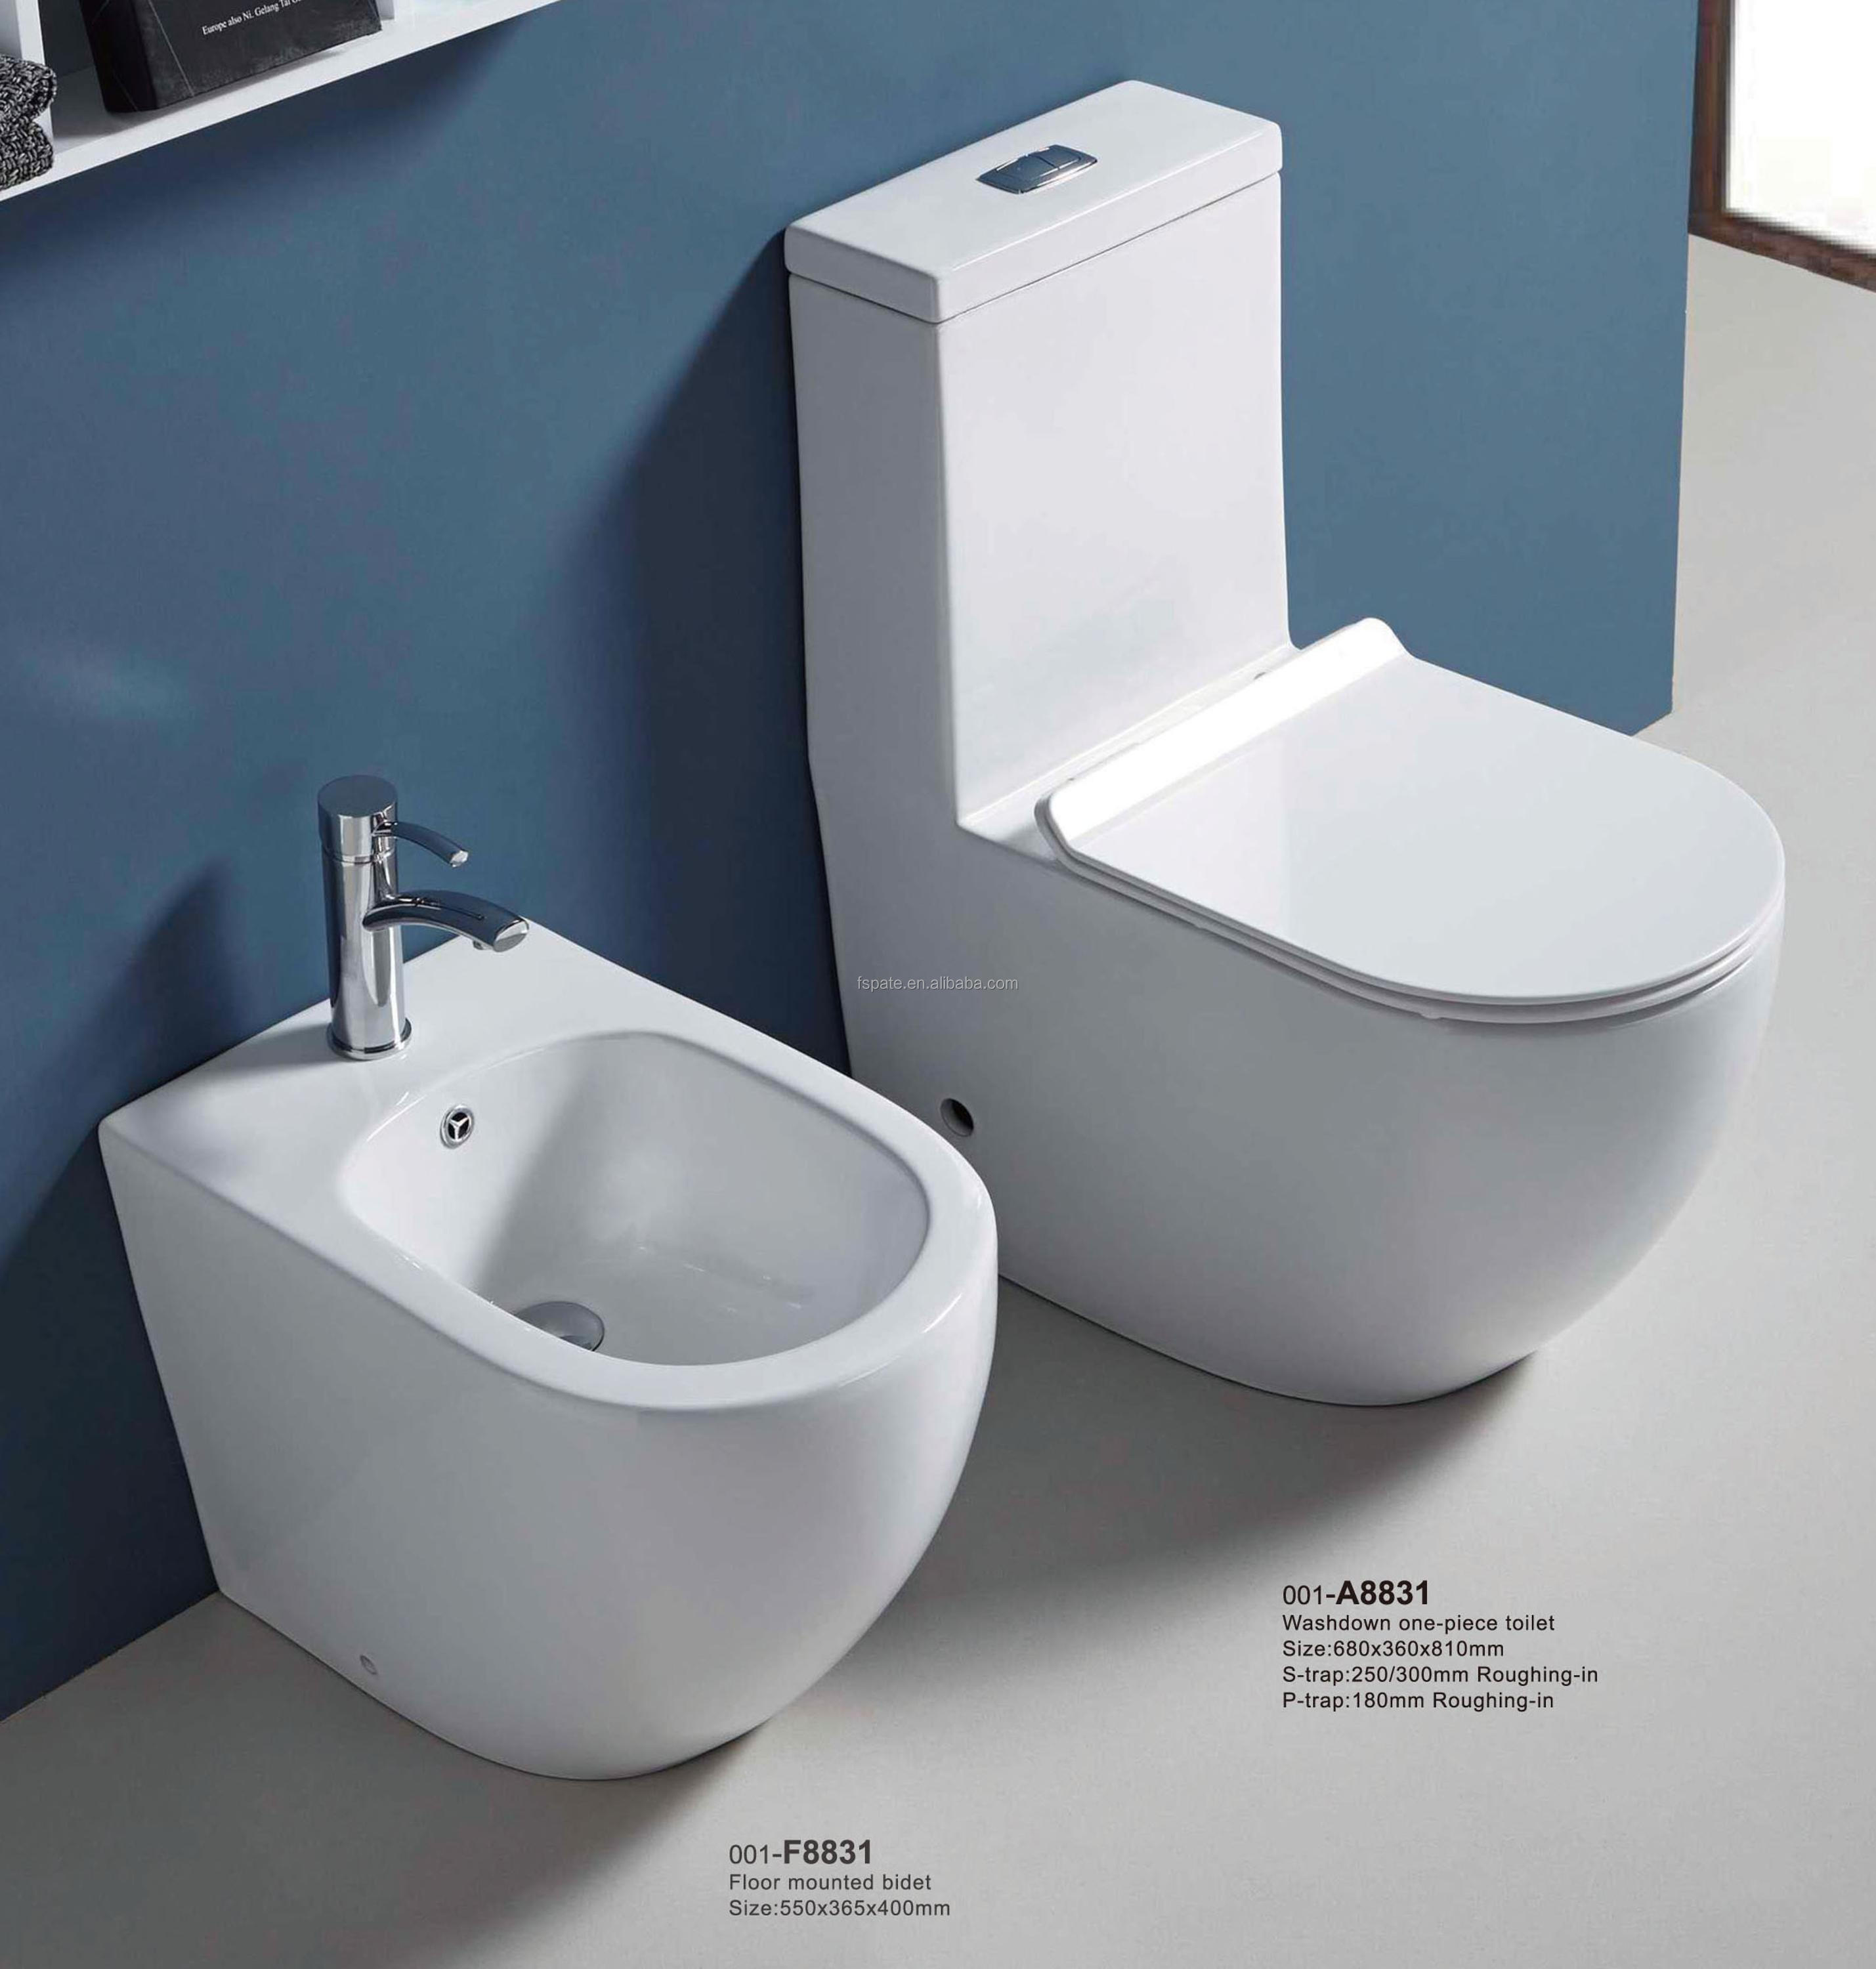 Plumbing Wc, Plumbing Wc Suppliers and Manufacturers at Alibaba.com